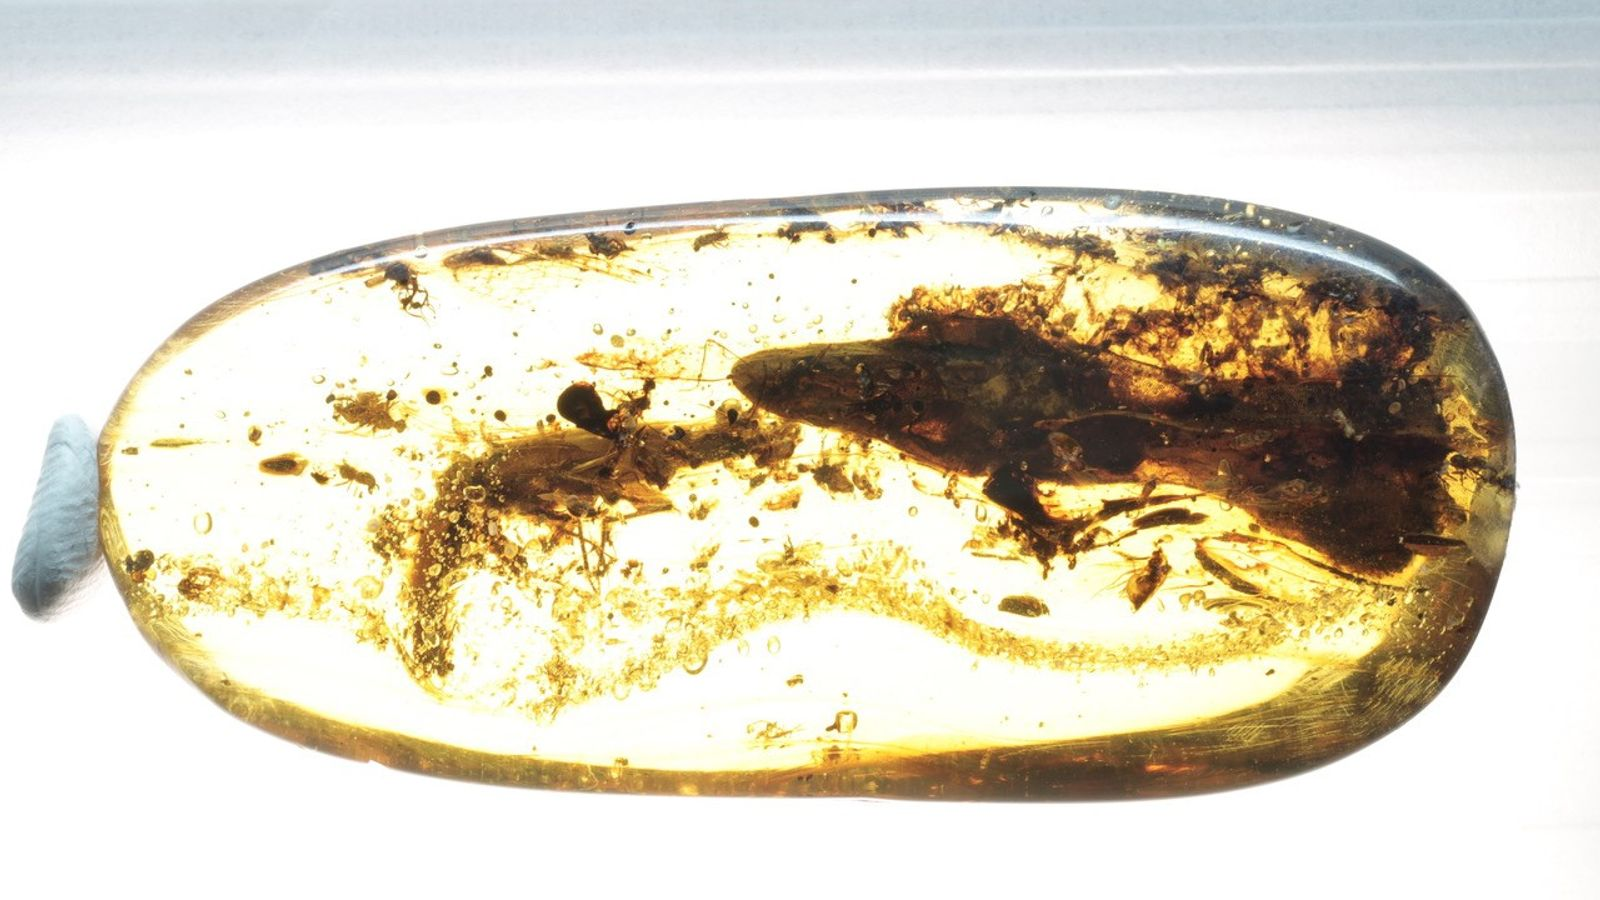 This cut and polished lump of amber holds the second known specimen of Oculudentavis, and the ...